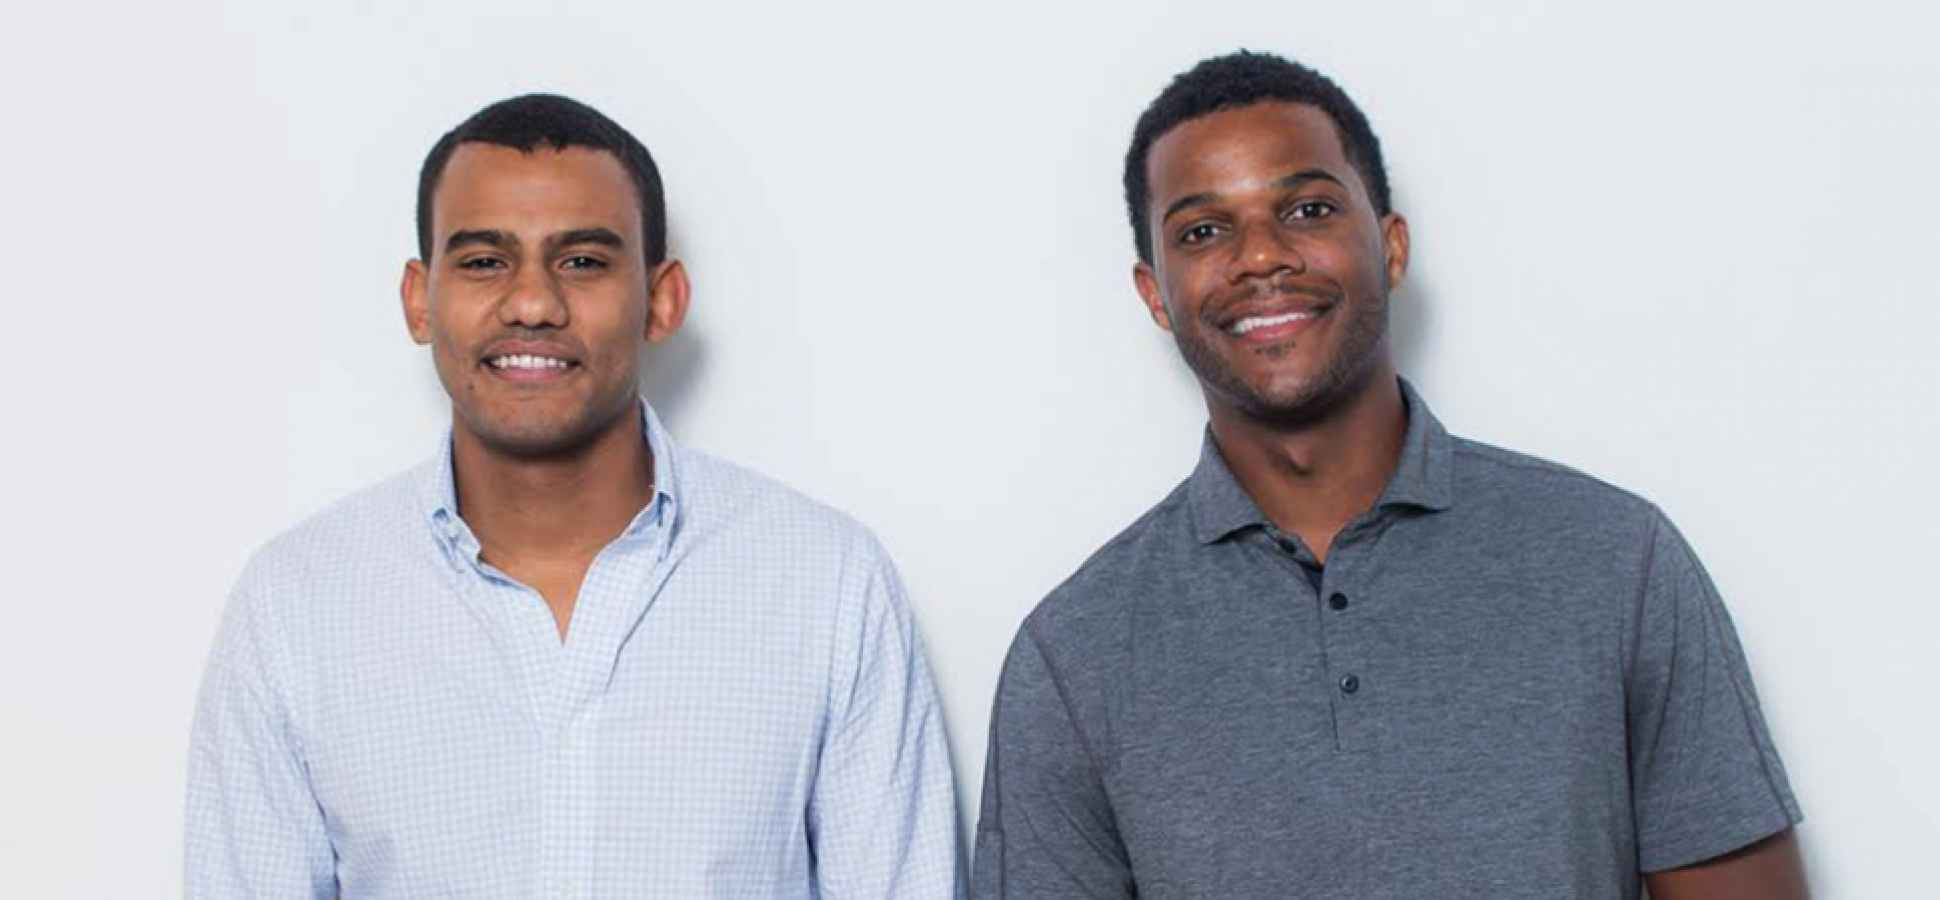 This Startup Is Cracking the Code to the Tech Industry's Diversity Problem